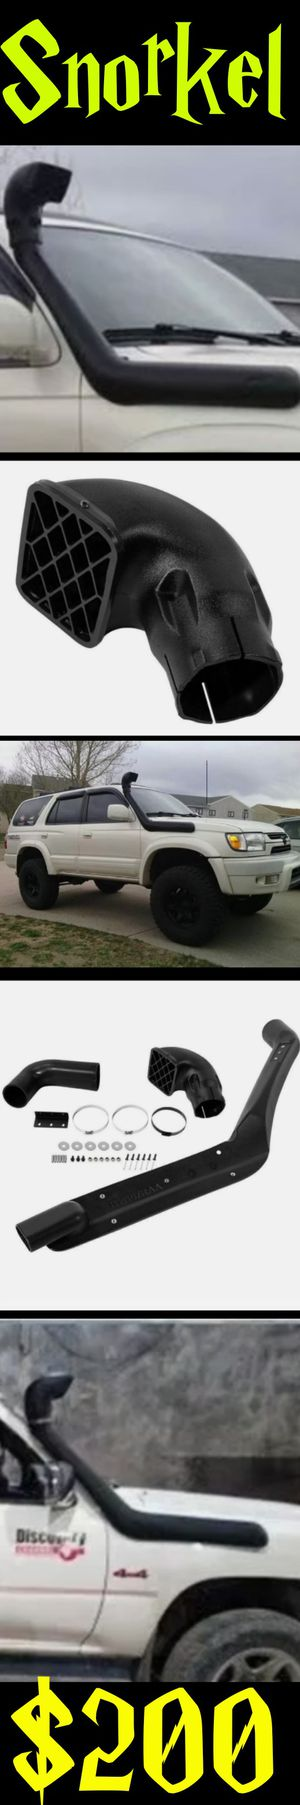 Toyota Tacoma 4runner Snorkel Intake 1995 1996 1997 1998 1999 2000 2001 2002 2003 2004 ☆$200 FIRM☆ for Sale in City of Industry, CA